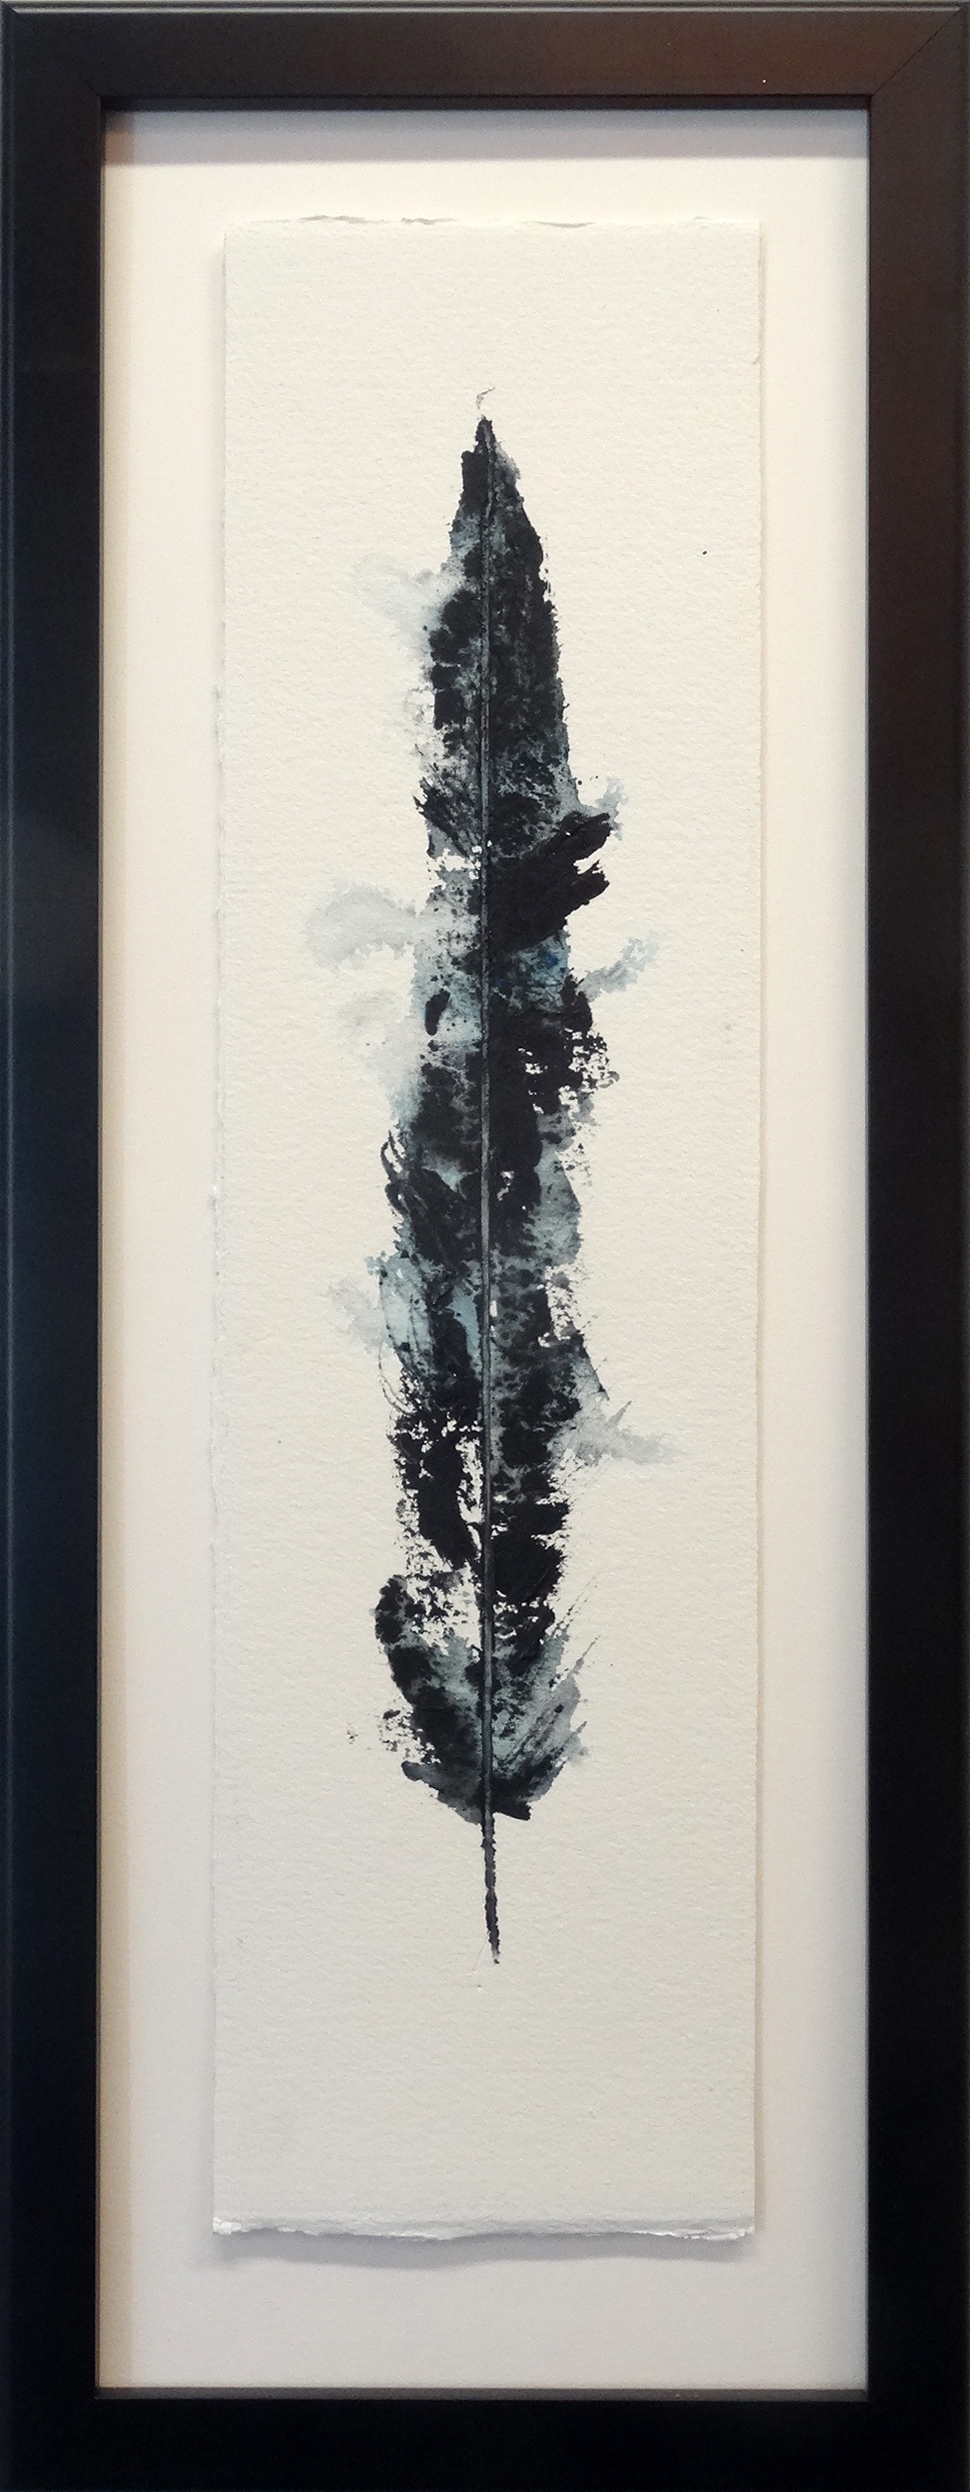 Larry Jens Anderson Solo Feather Acrylic on layered watercolor paper in shadowbox frame 27 x 10 inches LJA 198G